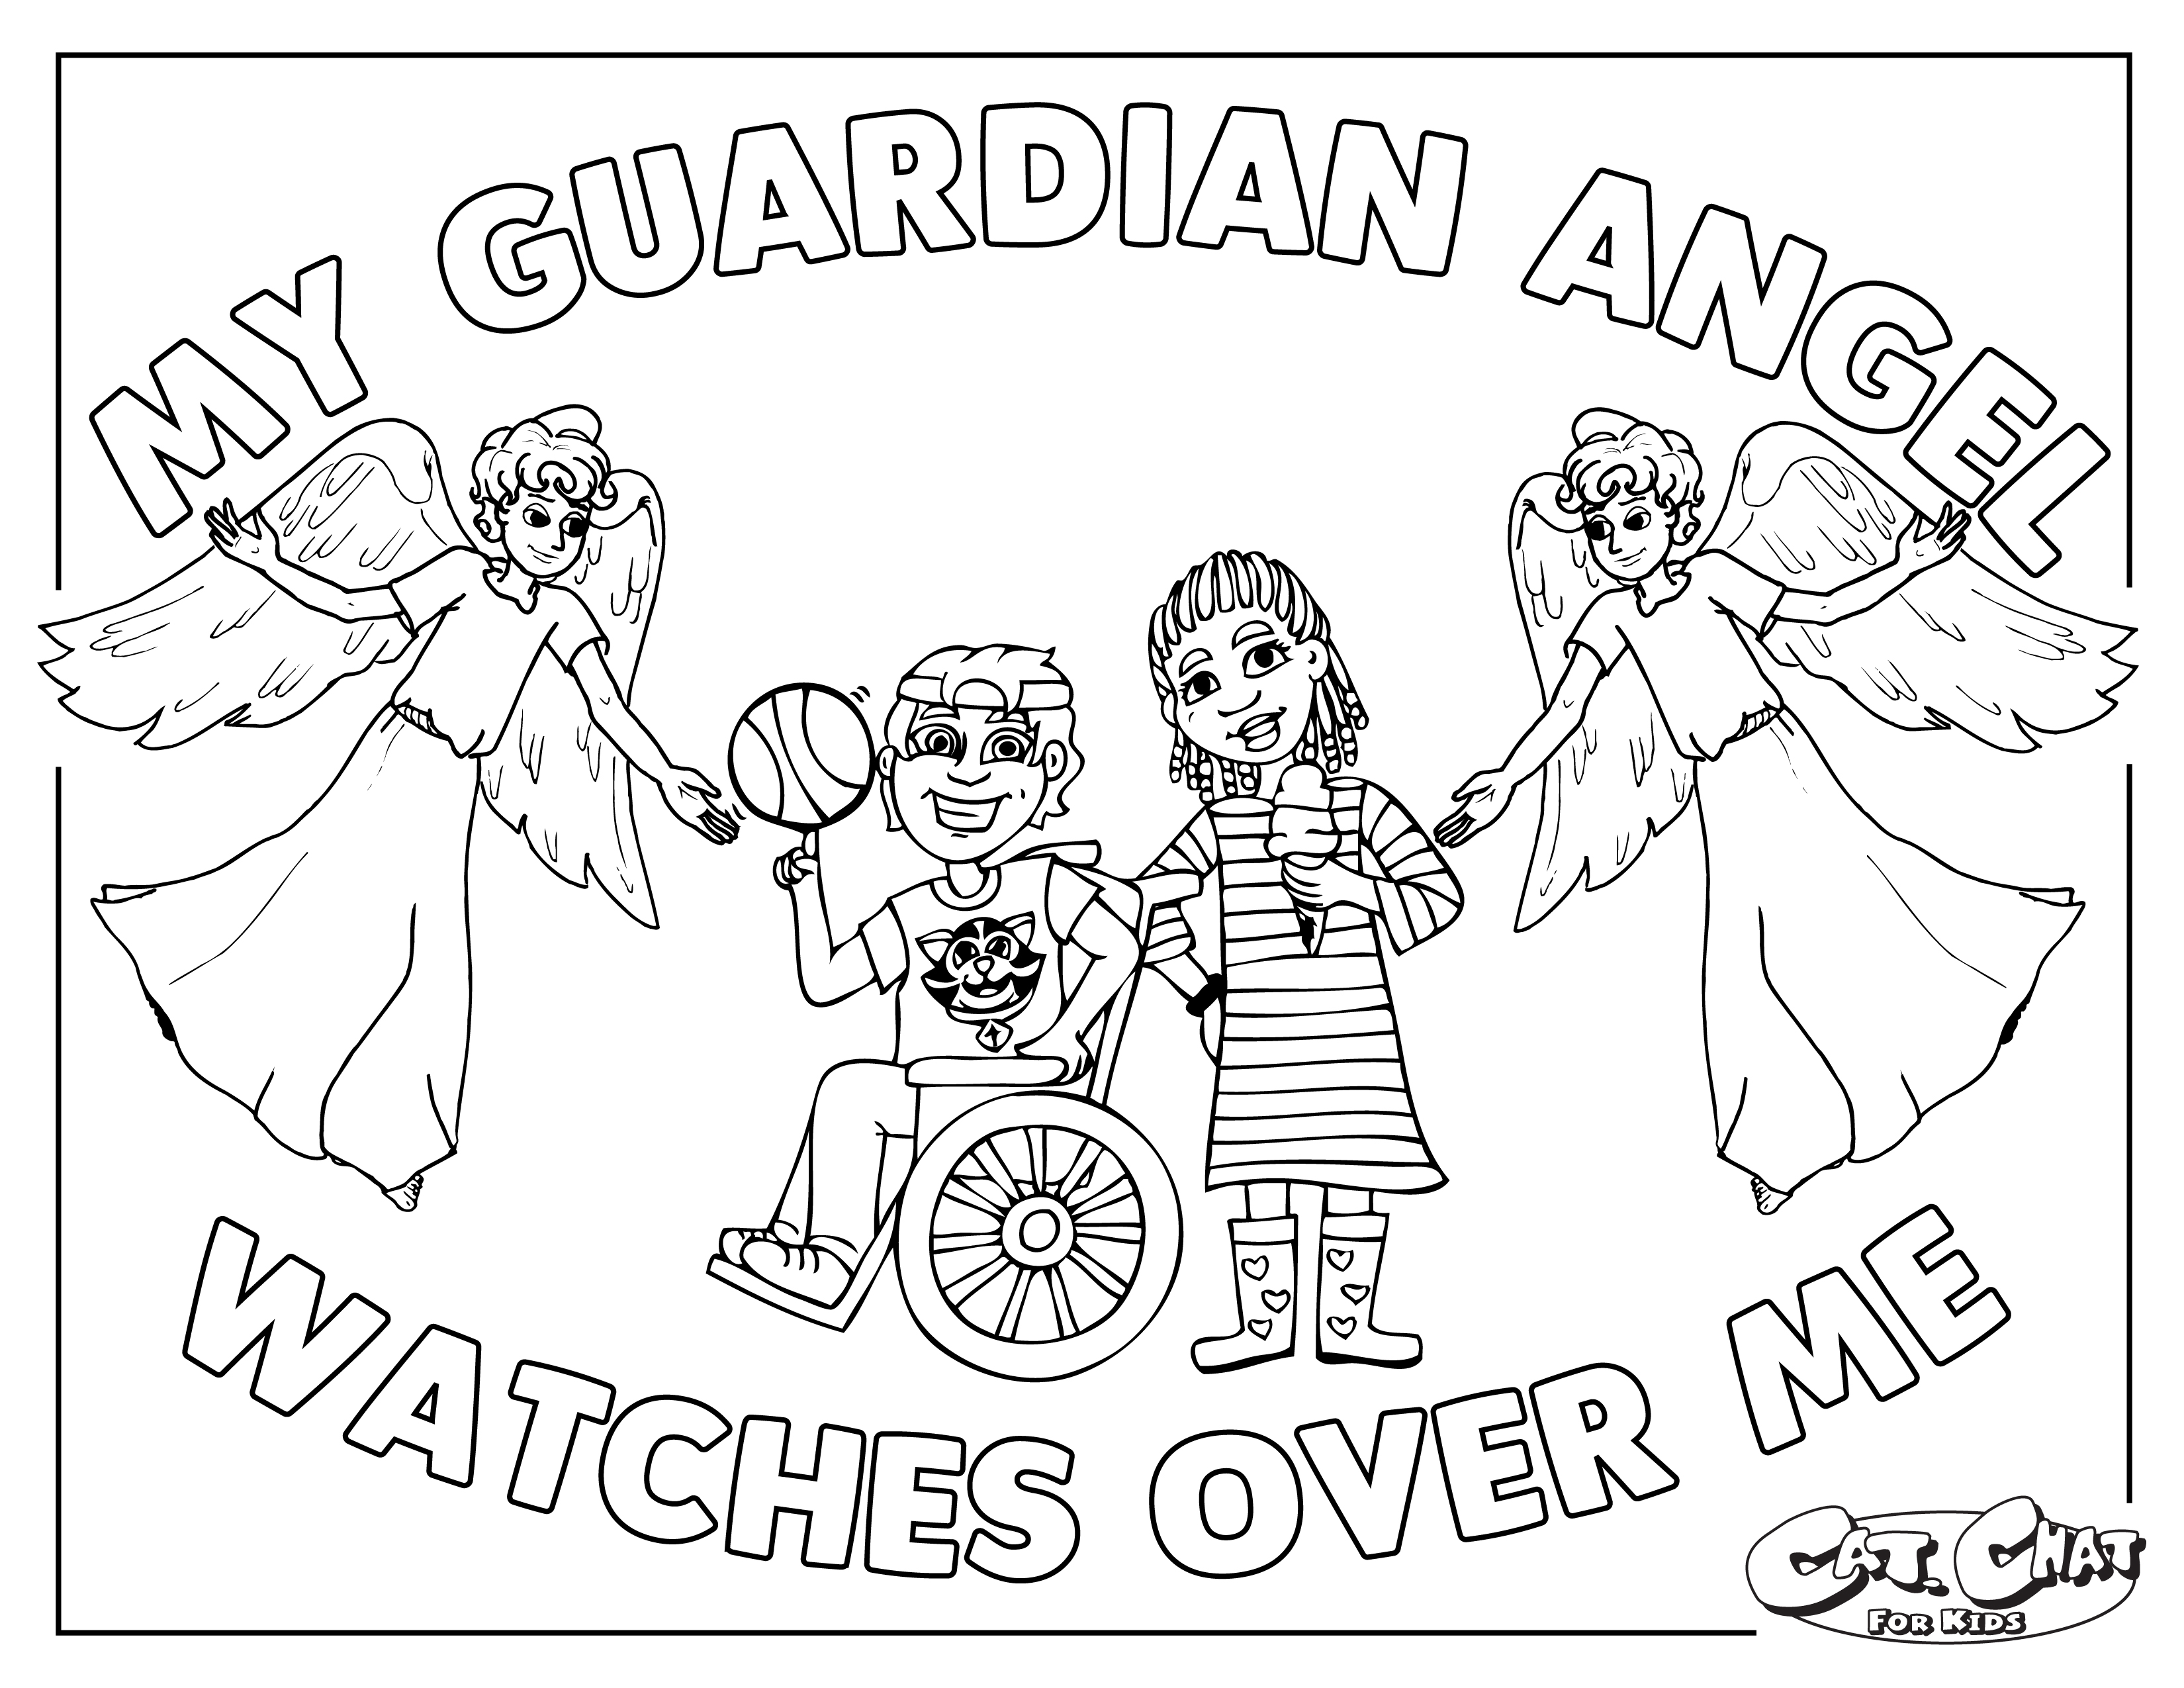 Guardian Angel coloring page 01